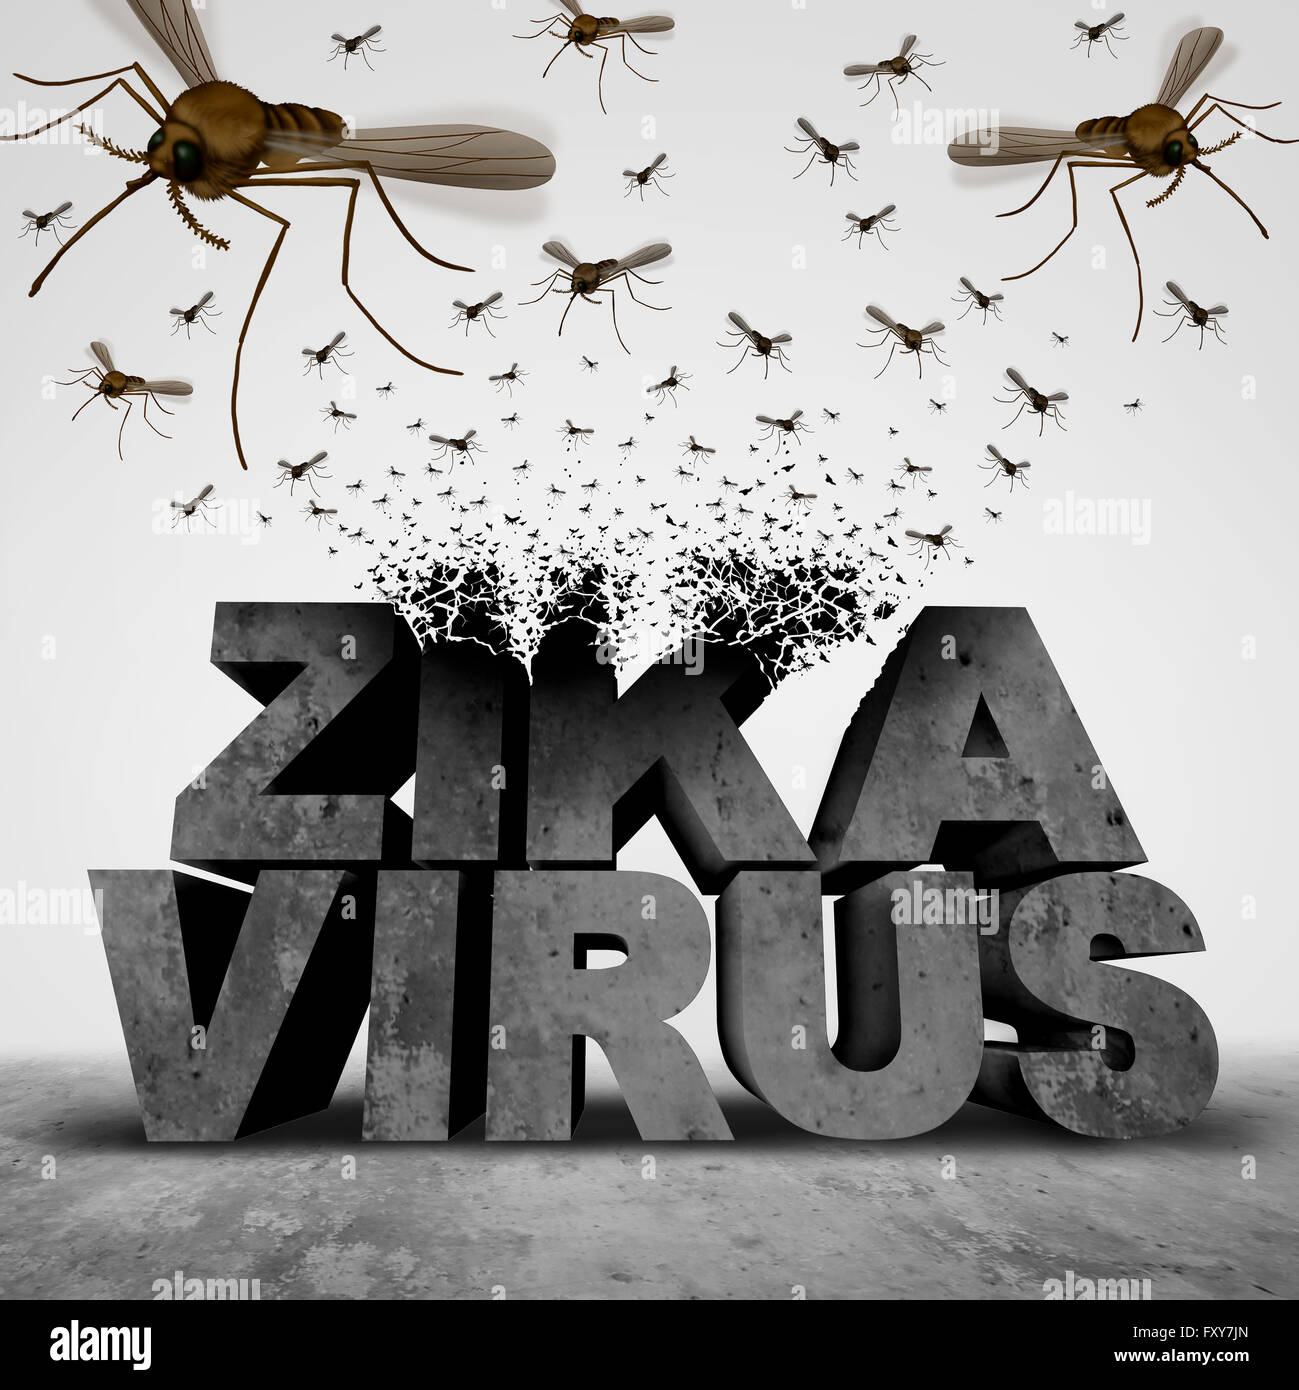 Danger virus Zika concept comme une illustration 3D de la transformation de texte à un groupe de l'essaimage Photo Stock